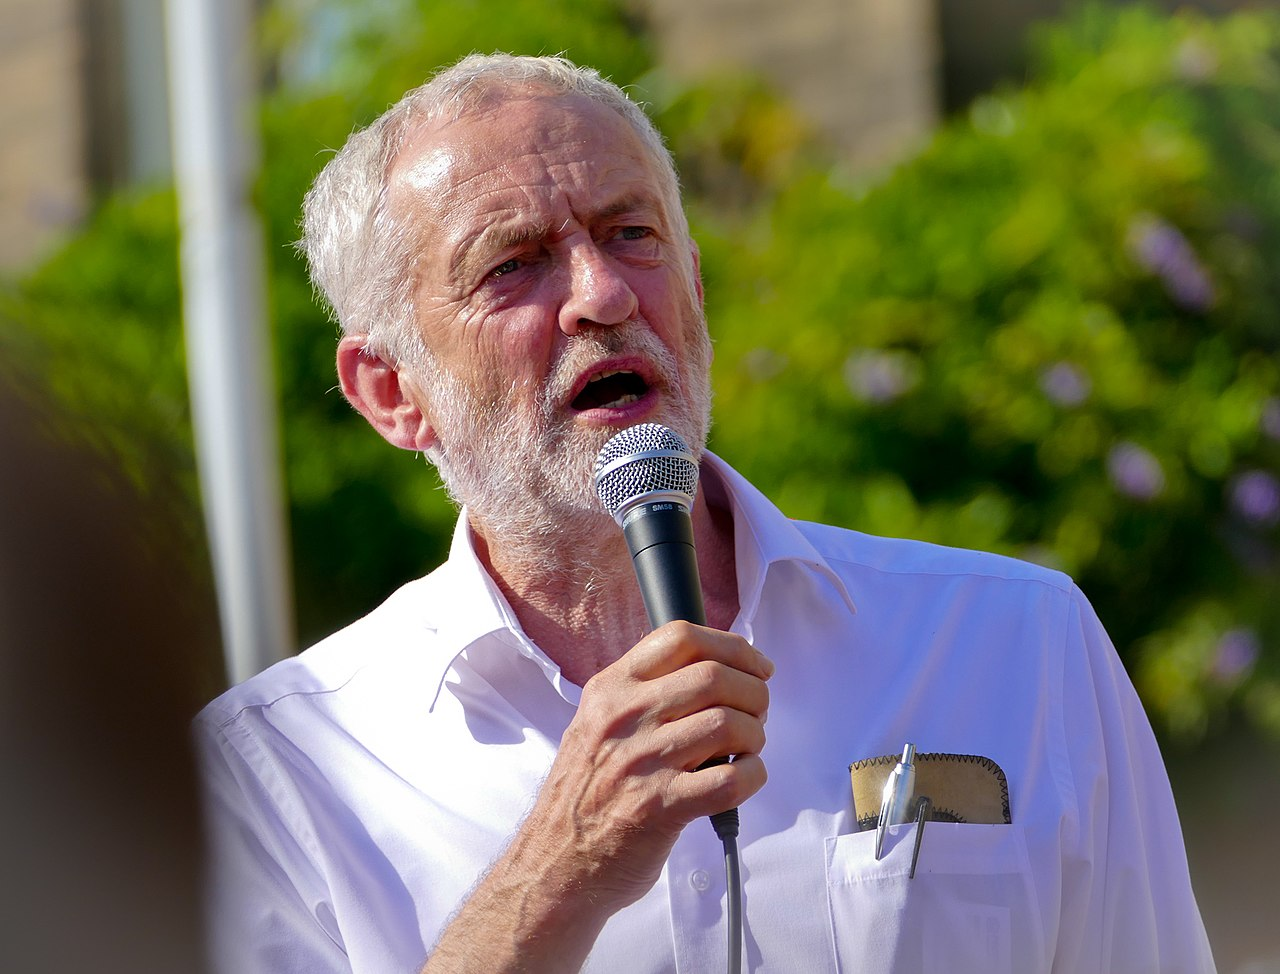 Jeremy-Corbyn-house-of-commons-unterhaus-labour-party-arbeitspartei-united-kingdom-kritisches-netzwerk-pazifismus-brexit-free-access-european-markets-great-britain-west-bank-gaza